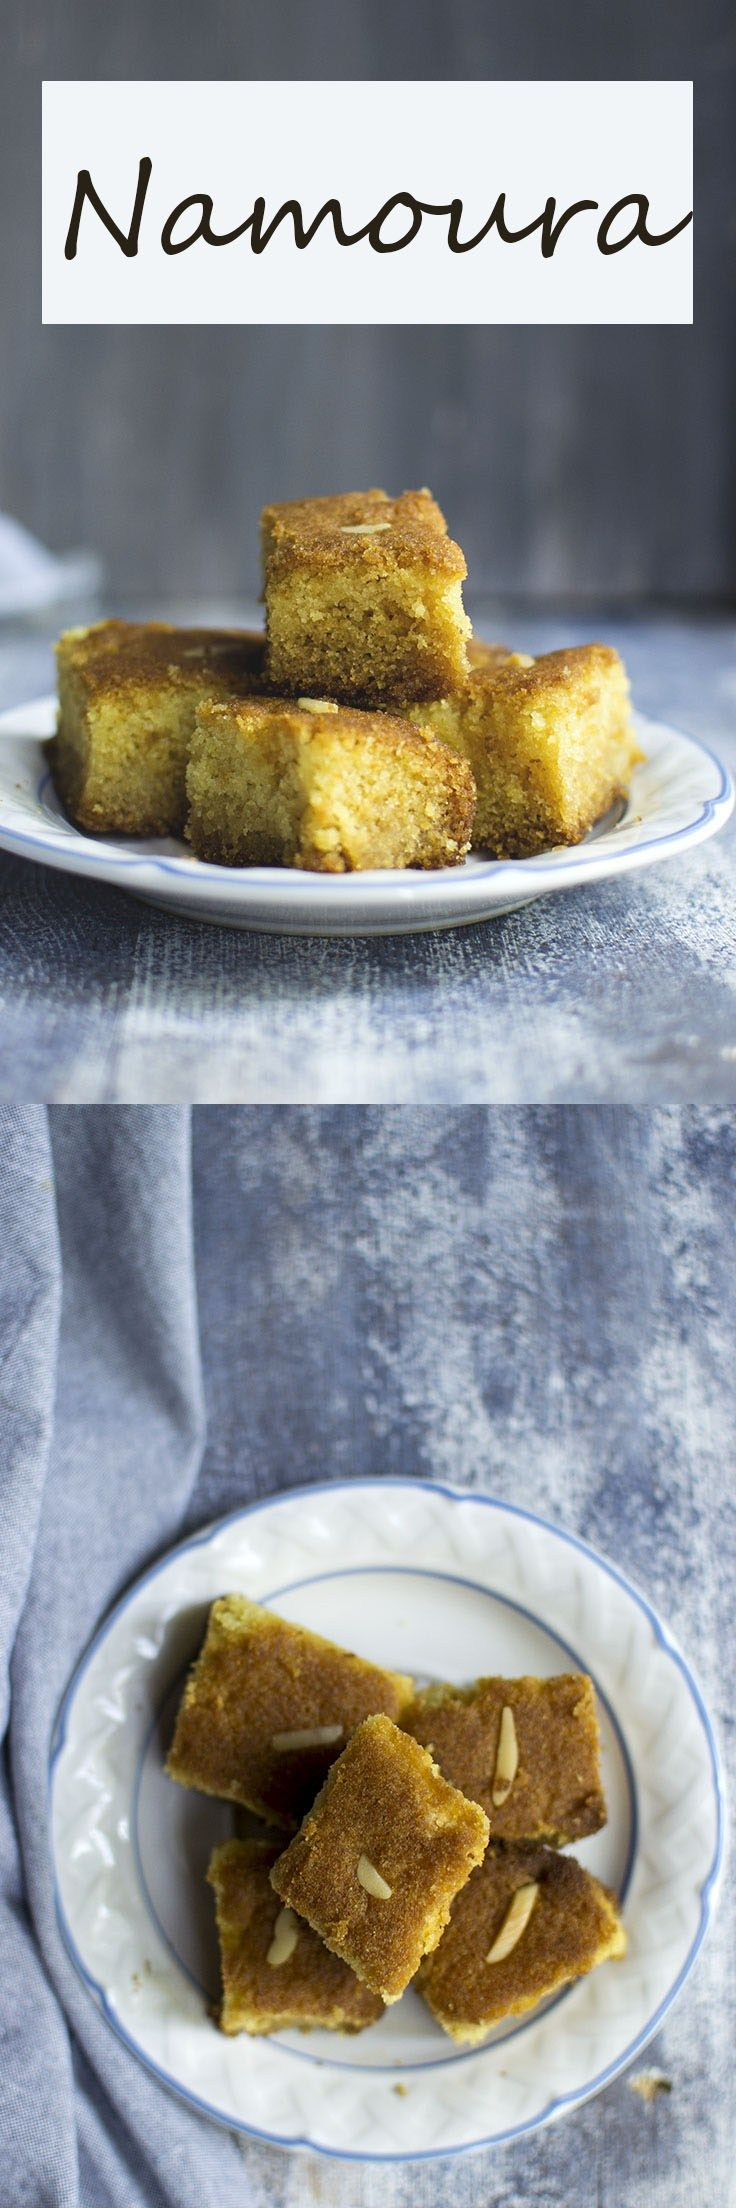 Namoura is a easy to make Lebanese dessert. Rich and dense with semolina cake doused in rose water flavored sugar syrup. It is a great make ahead dessert.